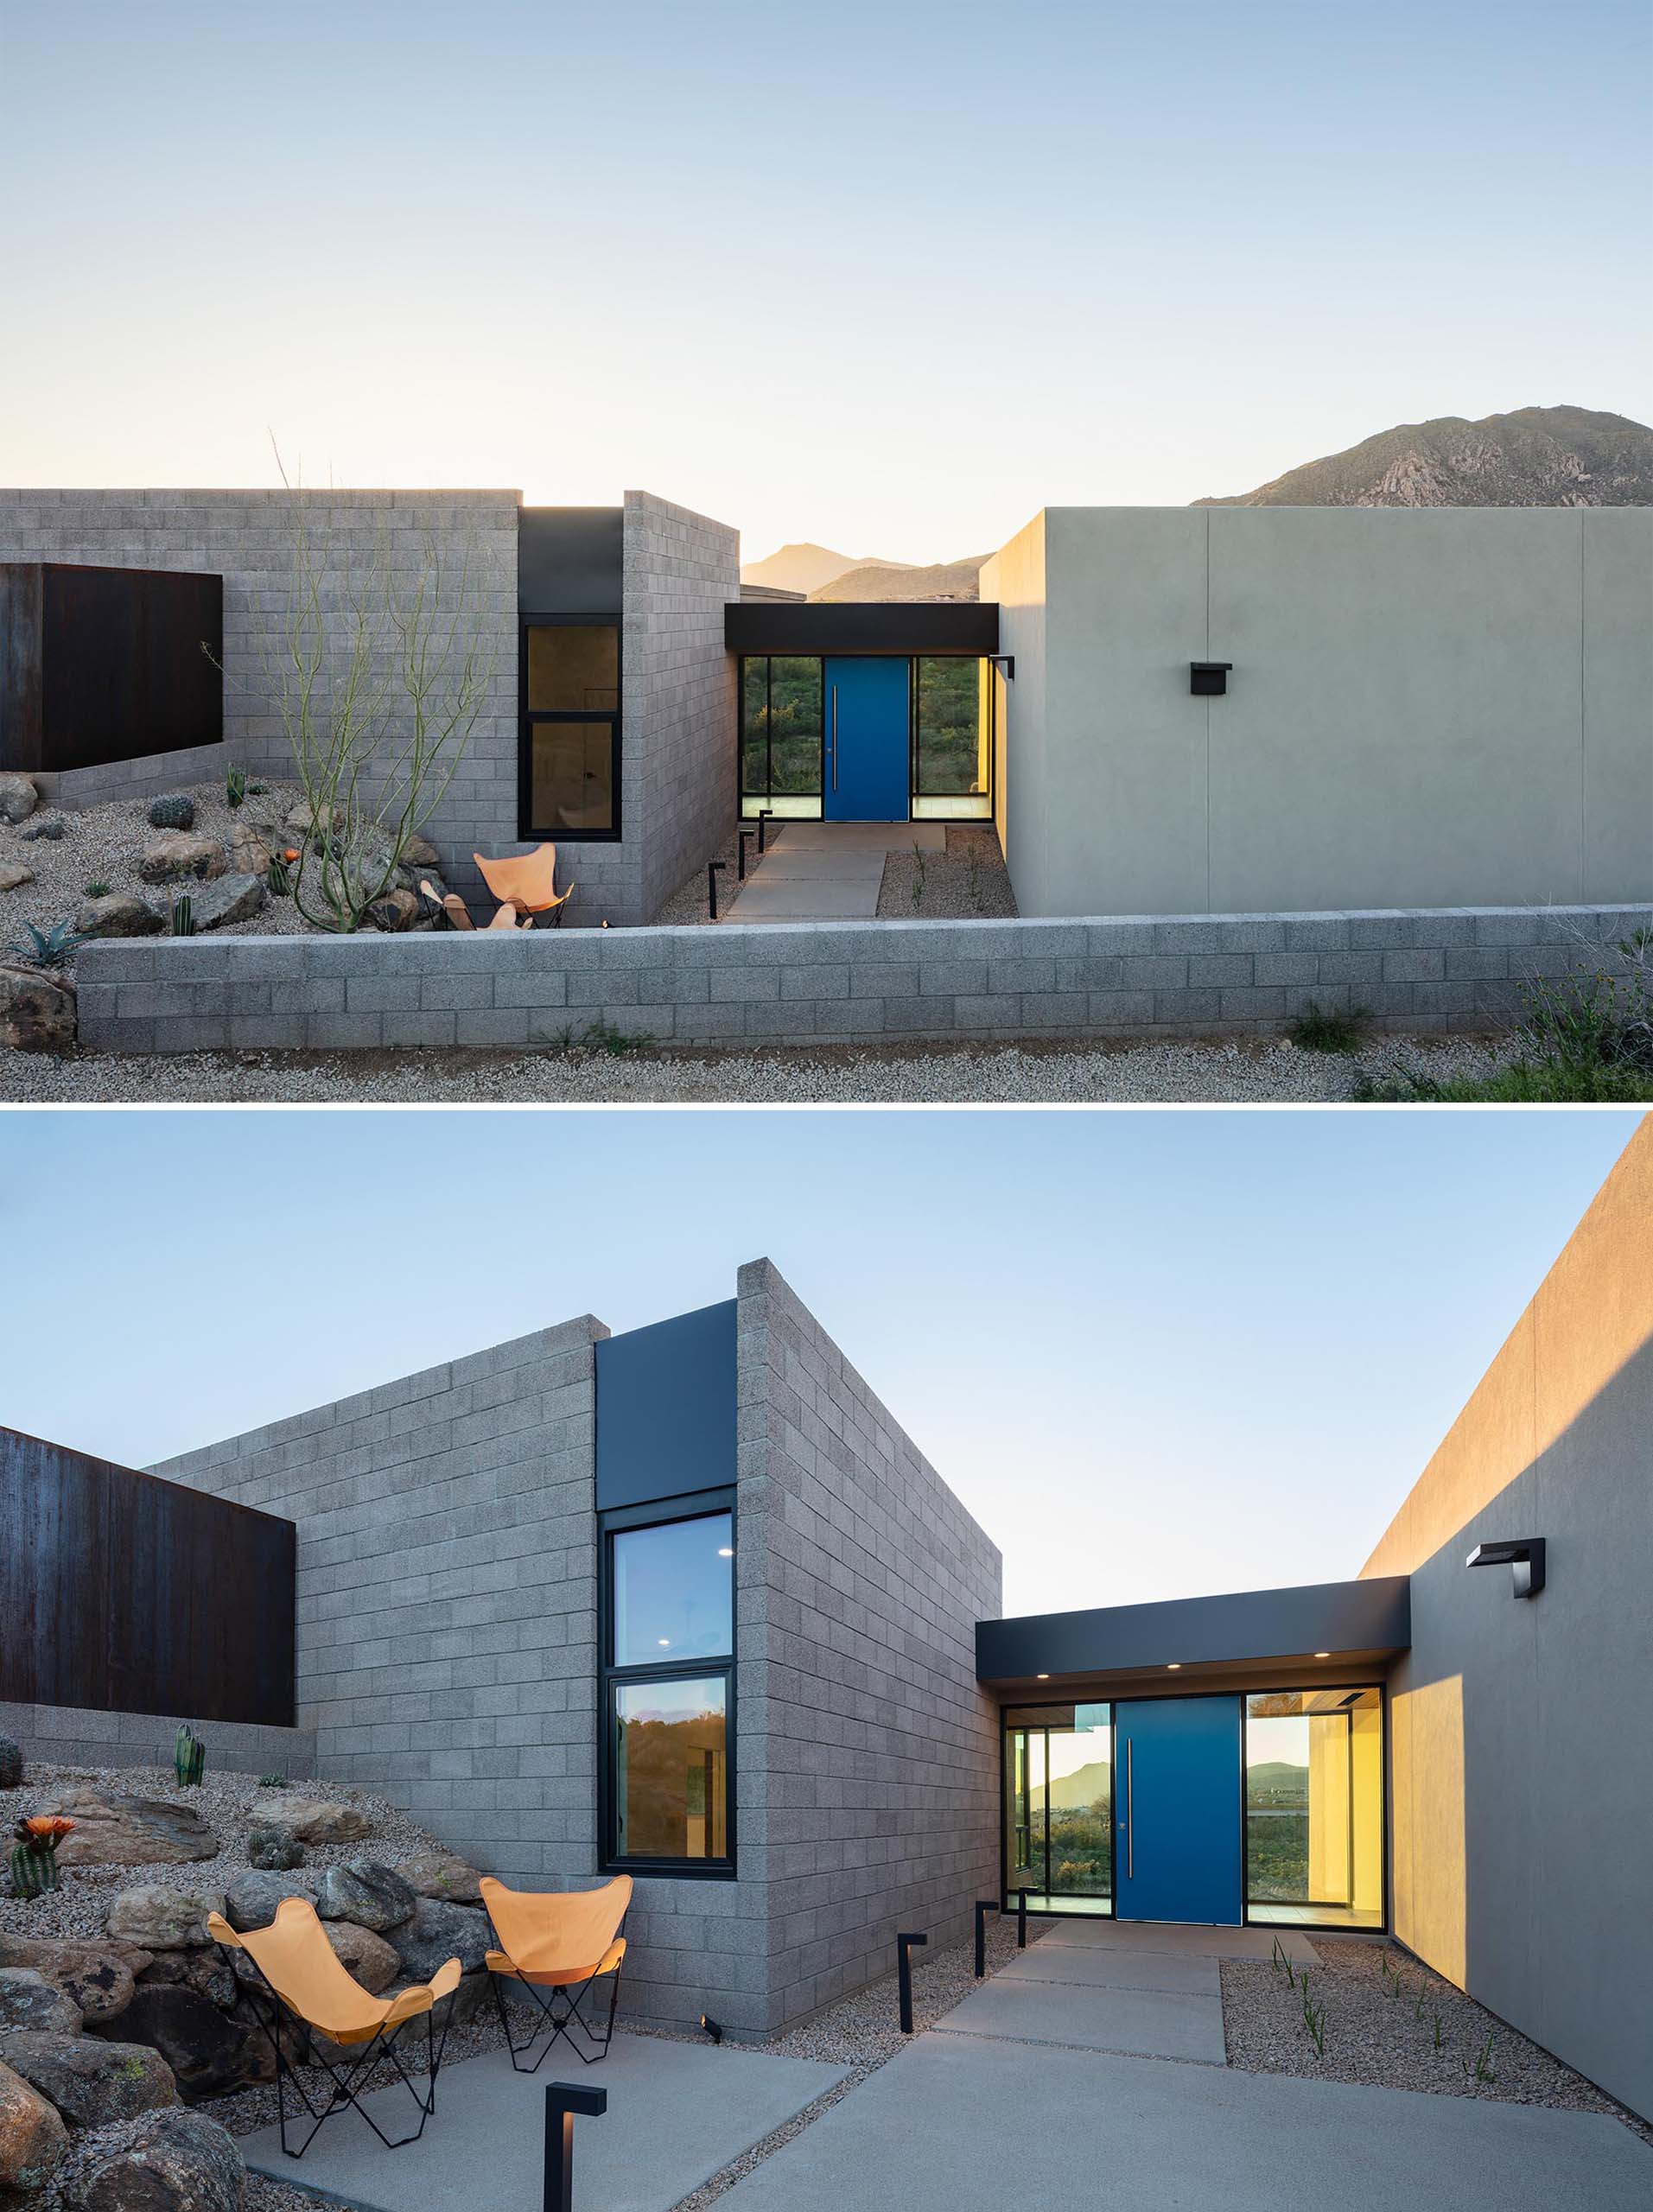 The entry of this modern desert home, which is highlighted by a bright blue pivoting front door, connects the foyer, garage entry and access to the guest area all through the glass 'bridge' element.